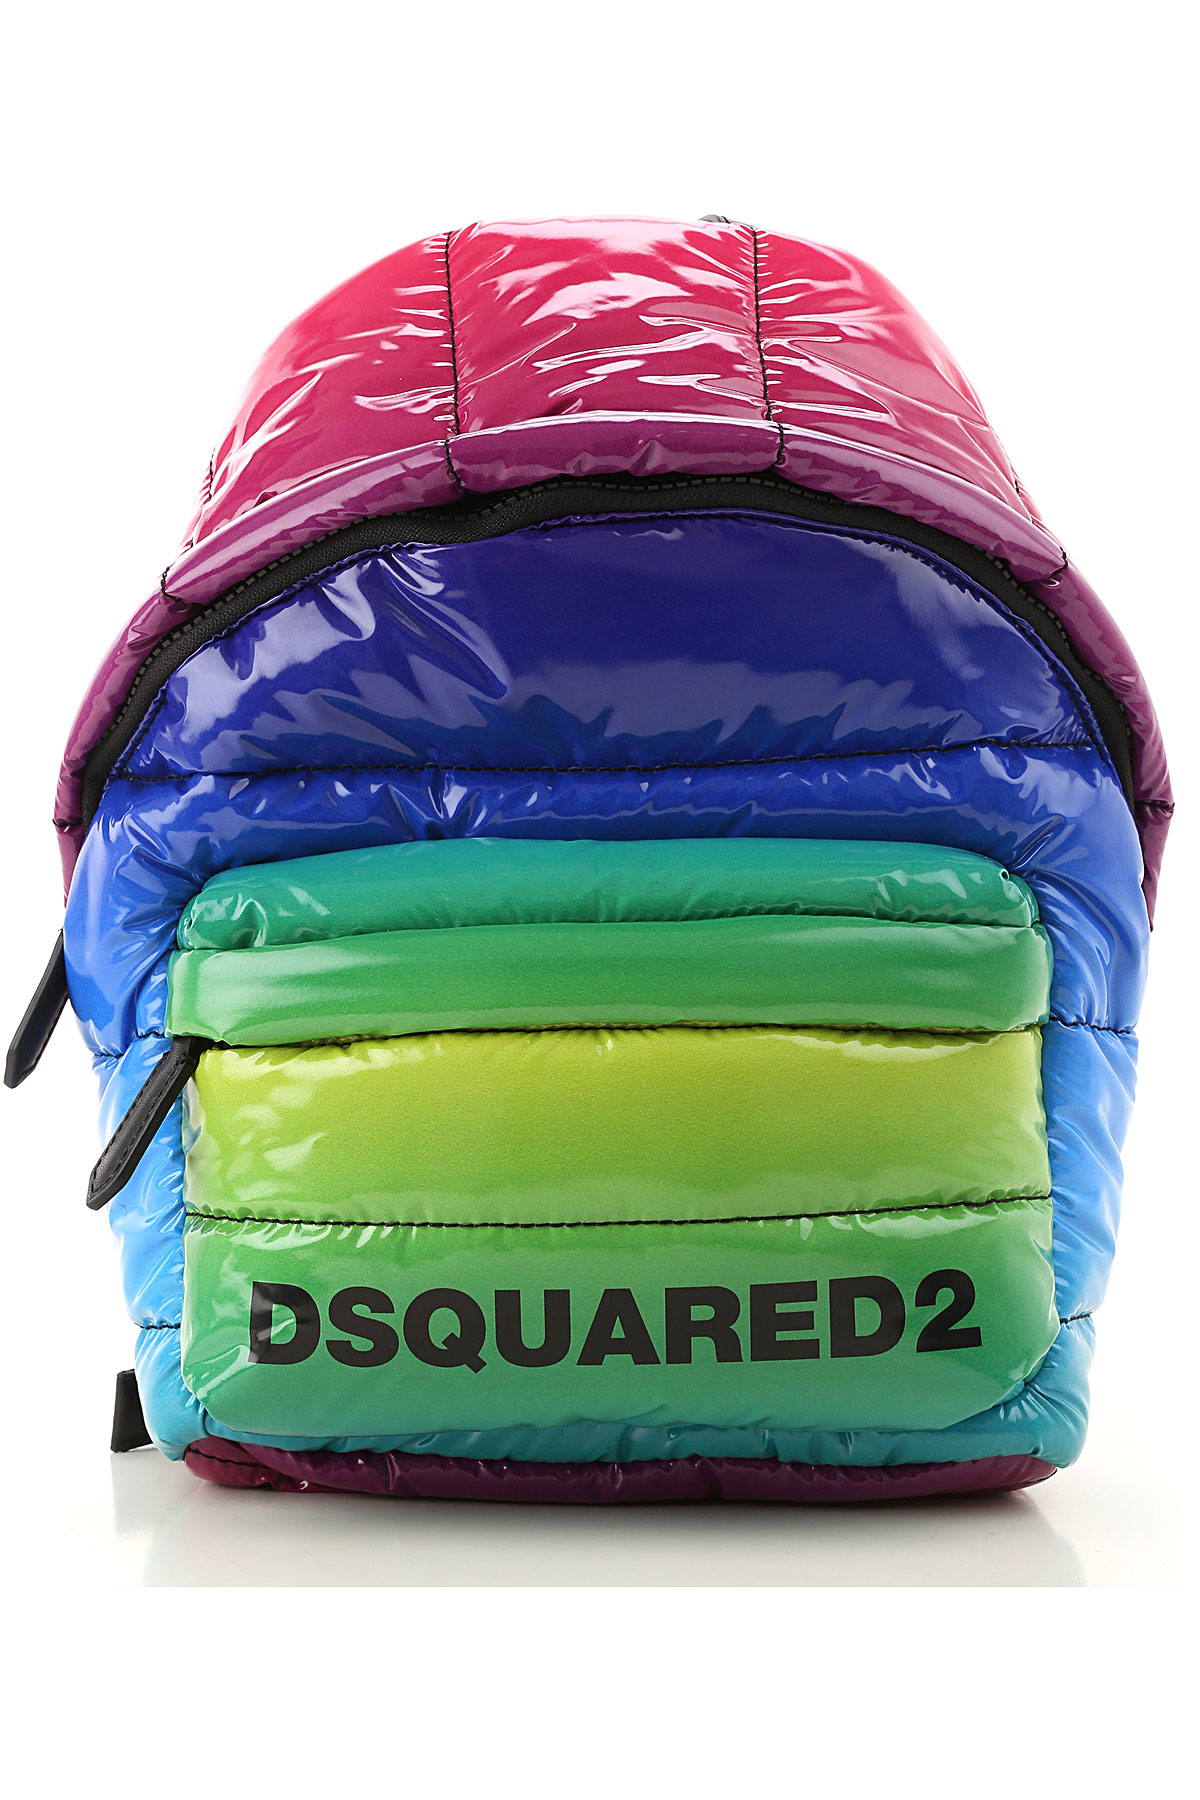 Dsquared2 Backpack for Women On Sale, Rainbow, Fabric, 2019